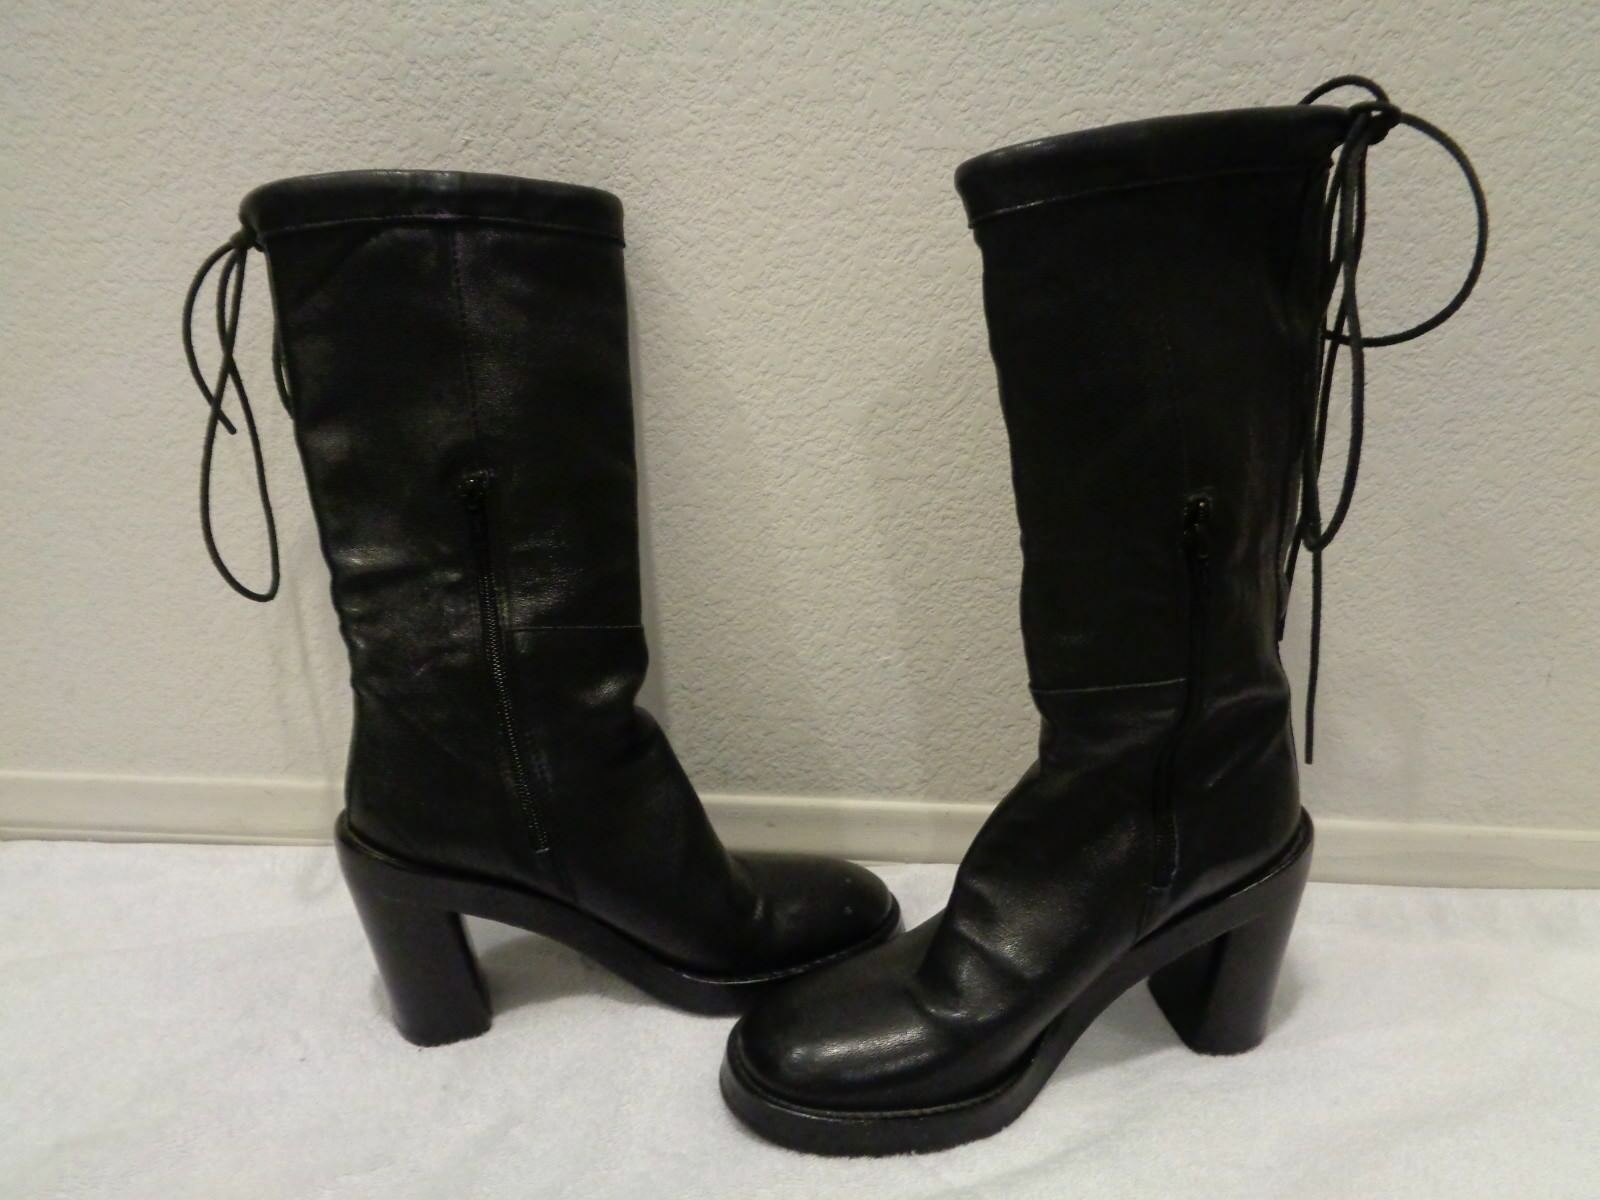 Ann Demeulemeester Black boots tie in the back SZ 37/7